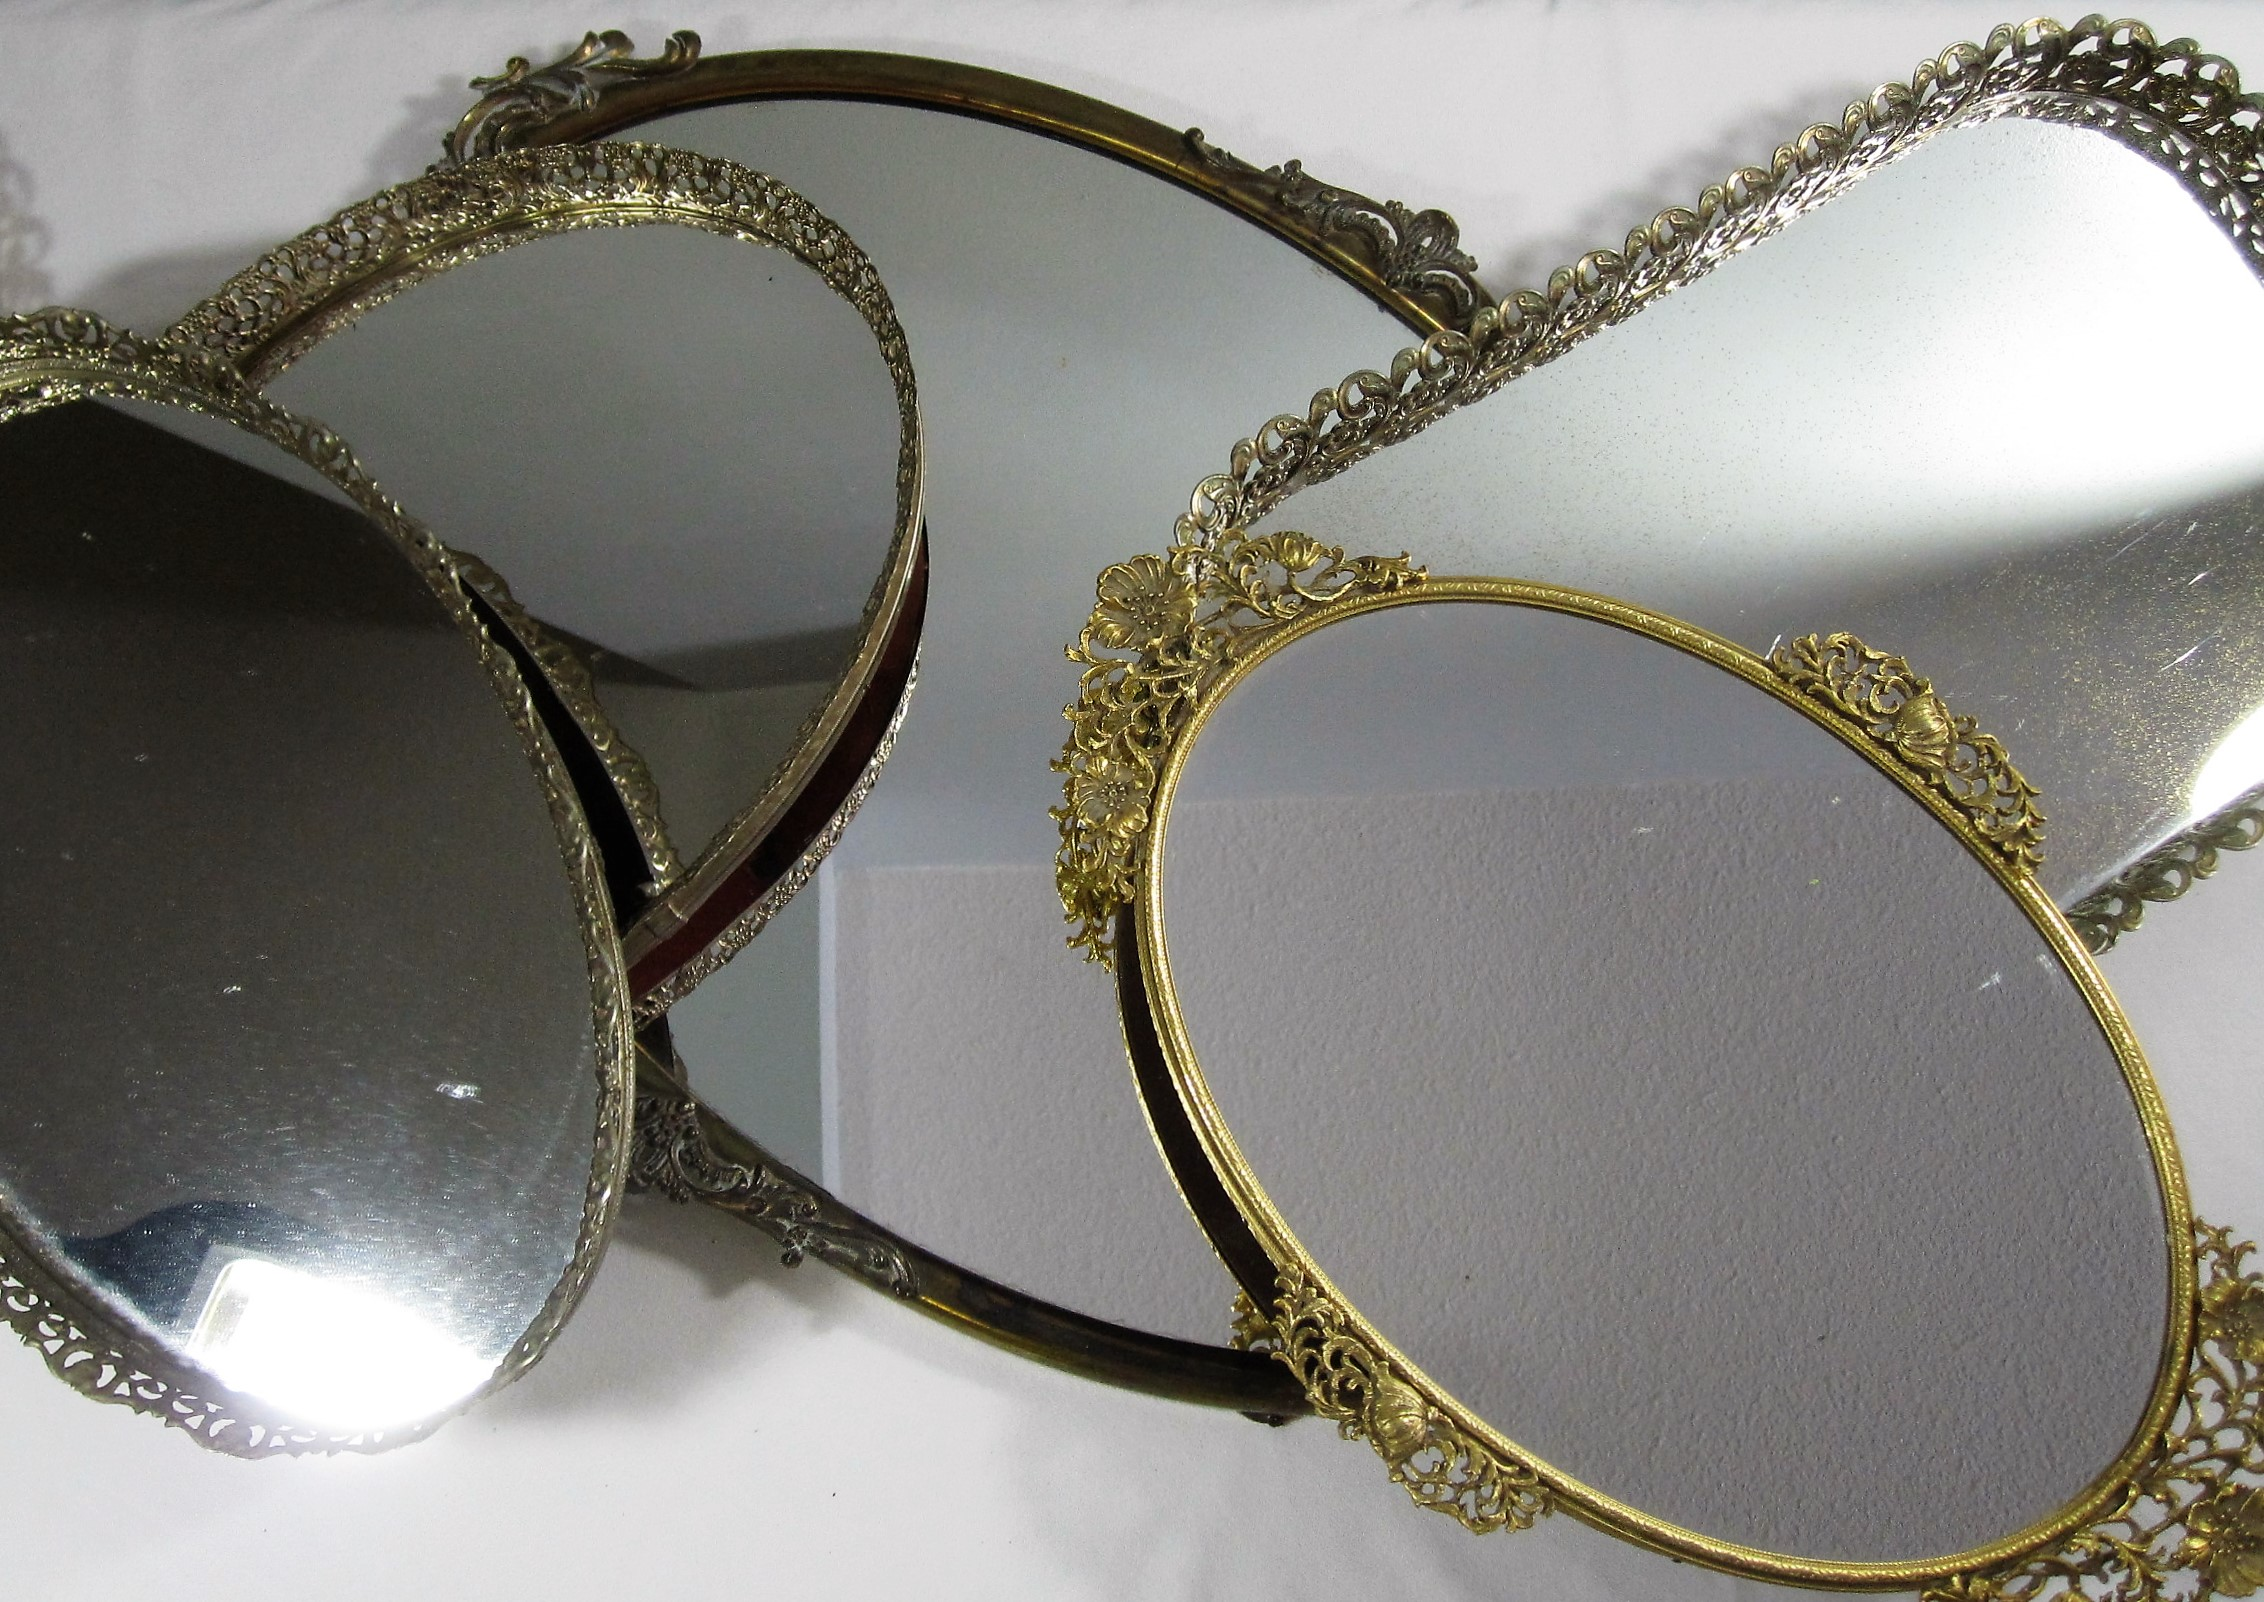 Gold Edge Mirrors - Description ~ gold edge dresser mirrors make the perfect display base for candles, flowers or can be used as serving trays for mini dessert or cupcakes. Reflect the beauty of your displays!Quantity ~ 24Rental Price ~ $5 - $8